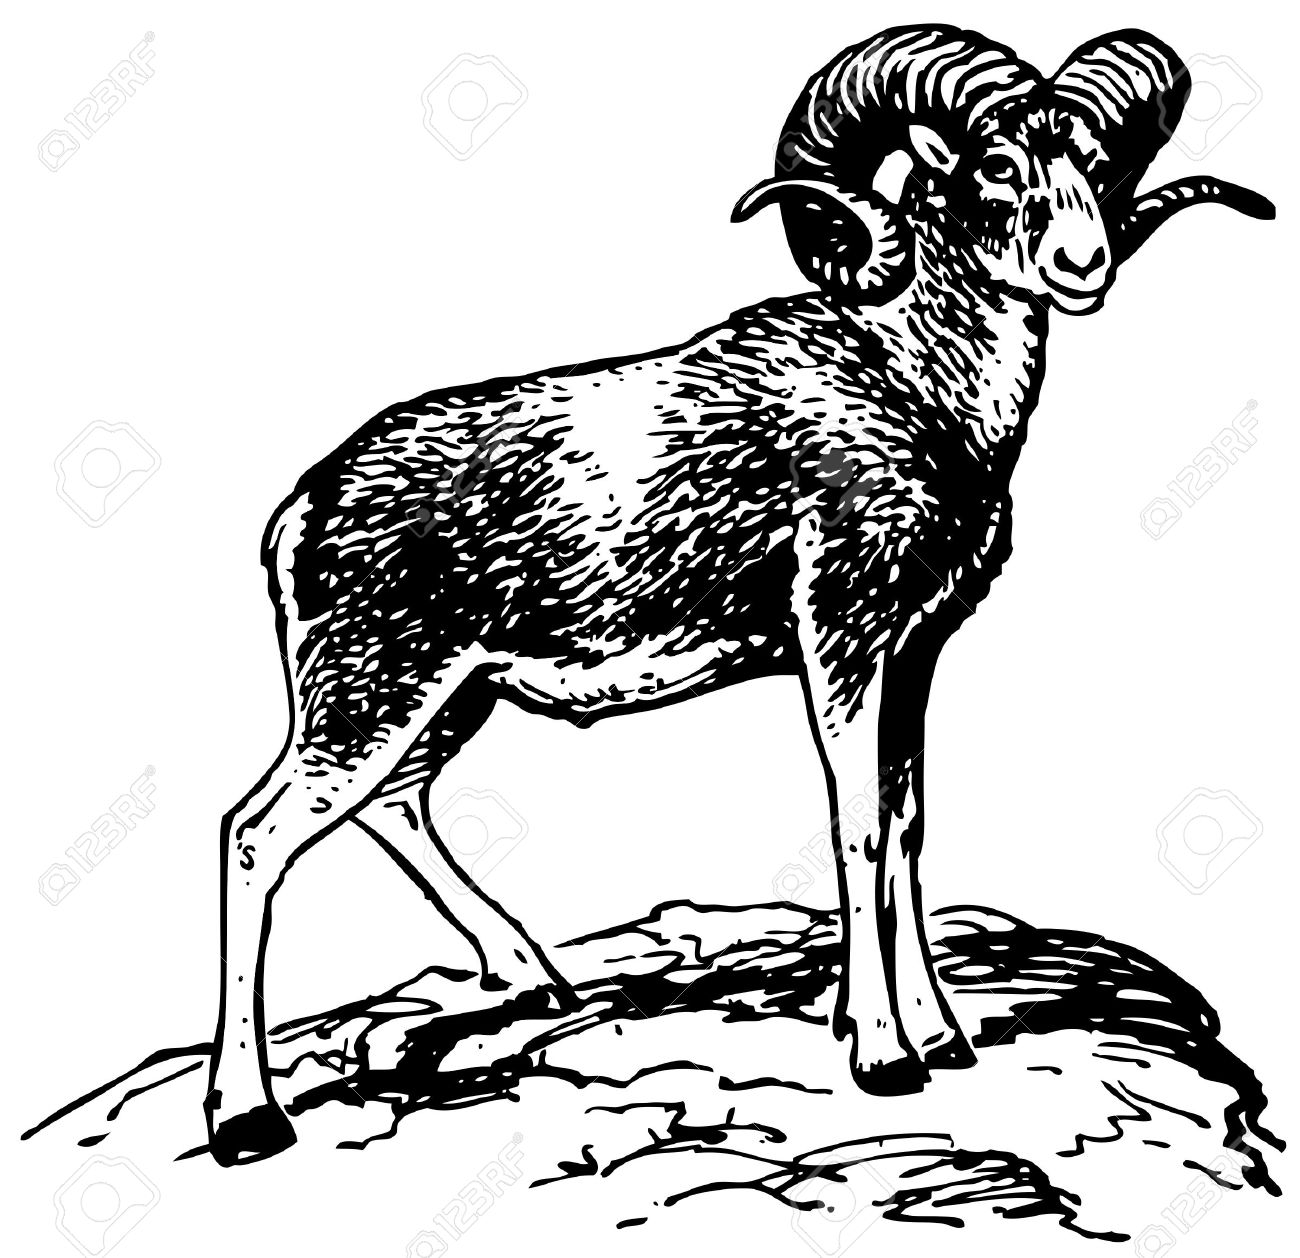 1300x1258 Argali Mountain Sheep Royalty Free Cliparts, Vectors, And Stock